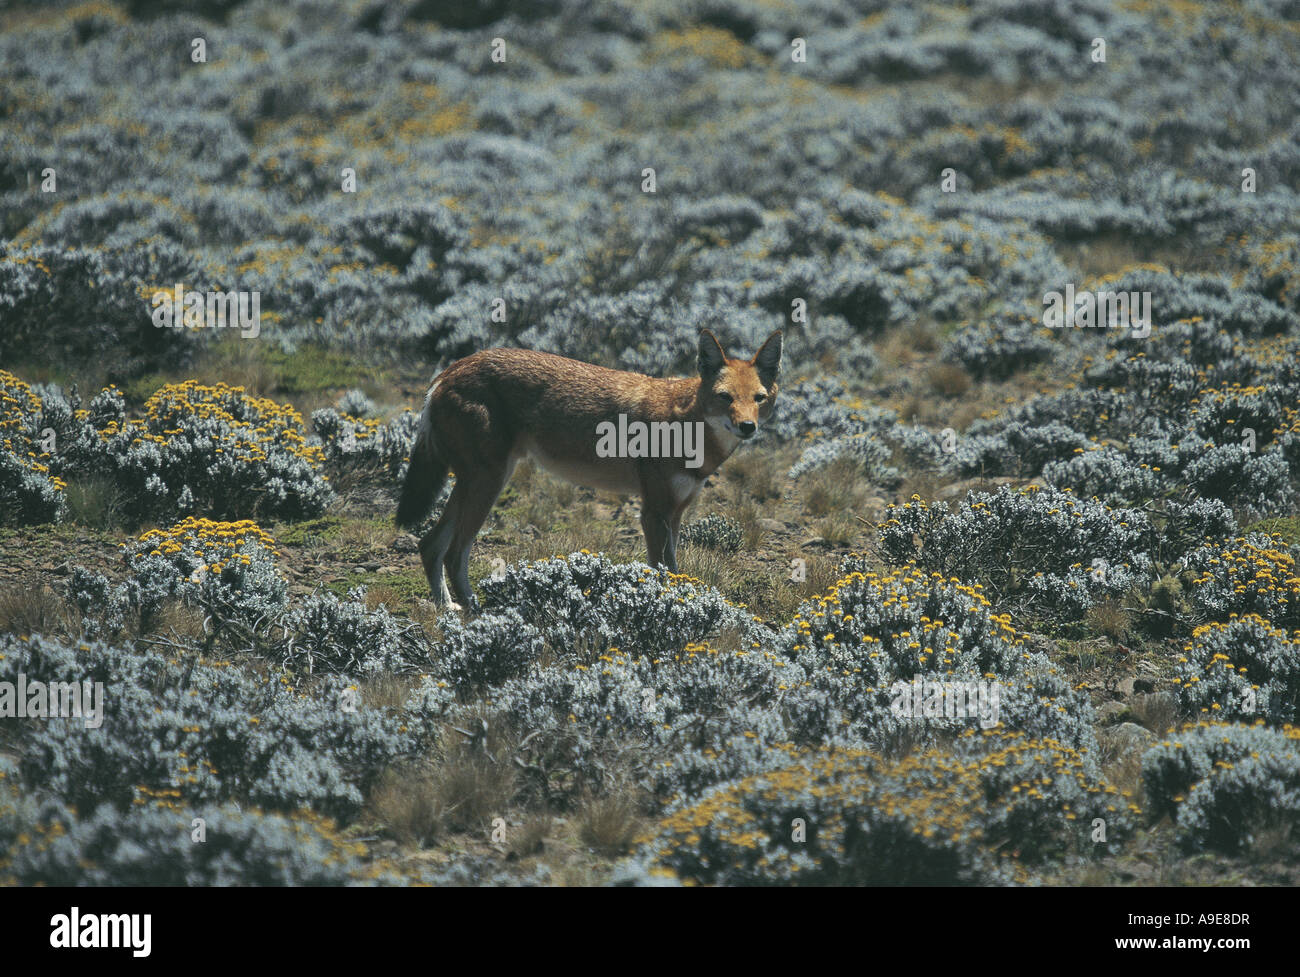 Canis Simensis Stock Photos & Canis Simensis Stock Images ...